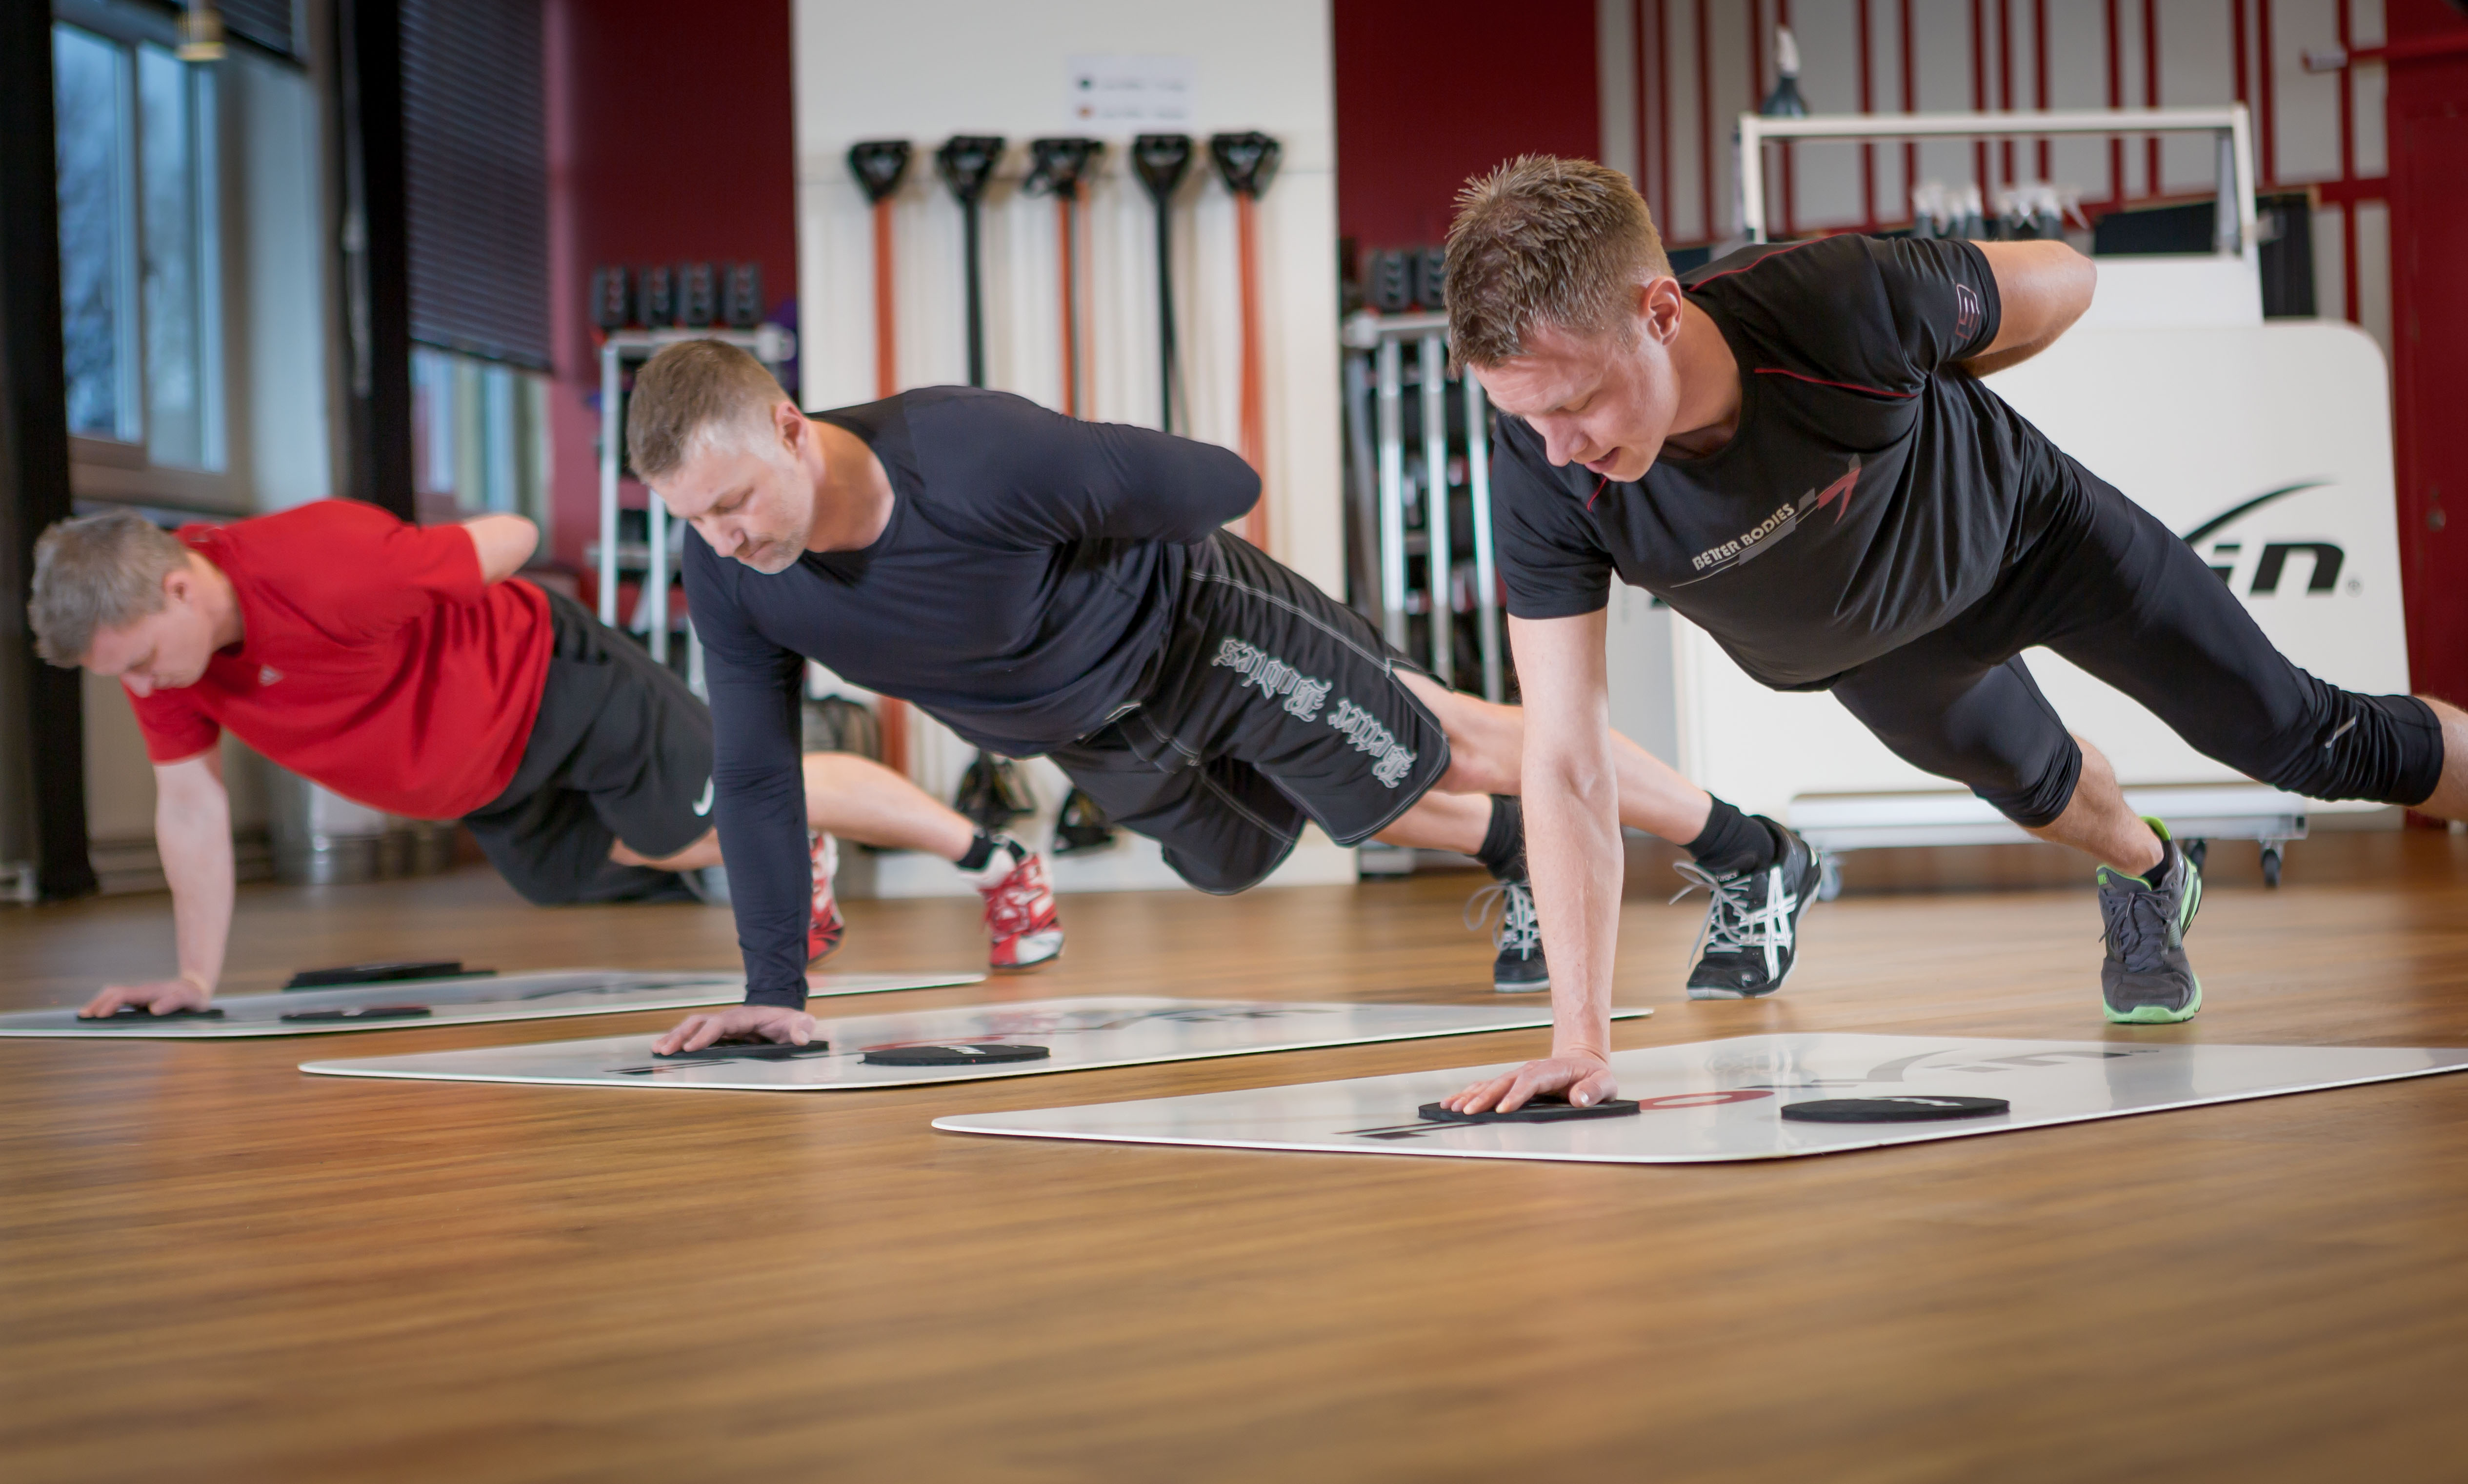 No Time to Exercise? 3 Reasons Short Workouts Are Better Than Longer Ones